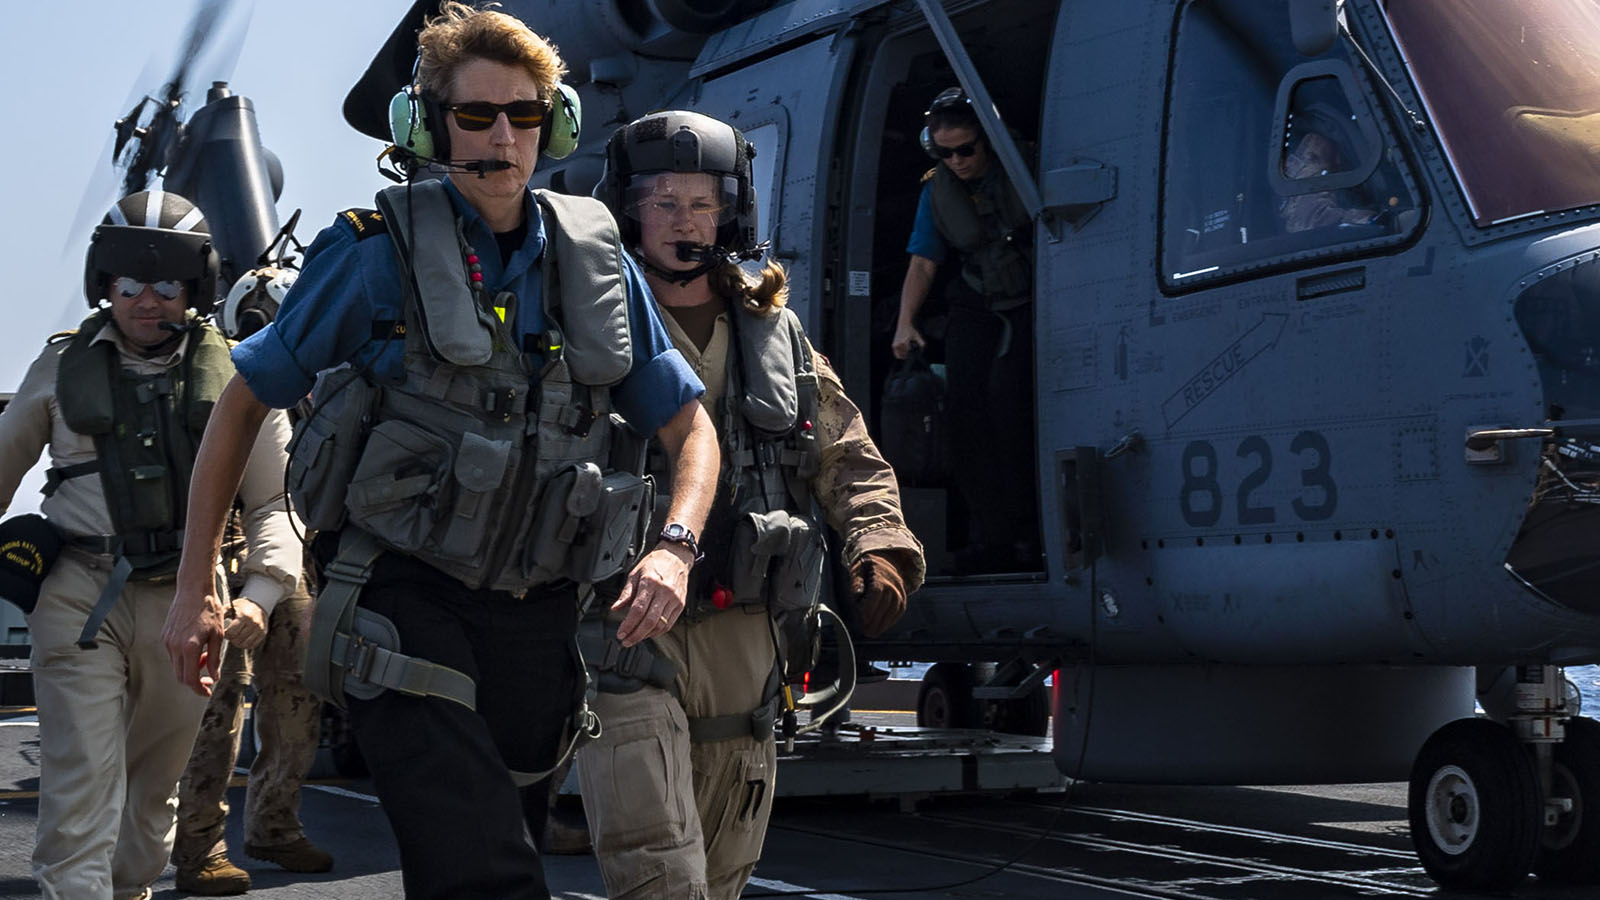 Commodore Josée Kurtz, Commander of Standing NATO Maritime Group Two, exits a CH-148 Cyclone helicopter call sign Kingfisher, after flying over the Mediterranean Sea during Operation REASSURANCE on September 5, 2019. Photo: Corporal Braden Trudeau, Trinity - Formation Imaging Services